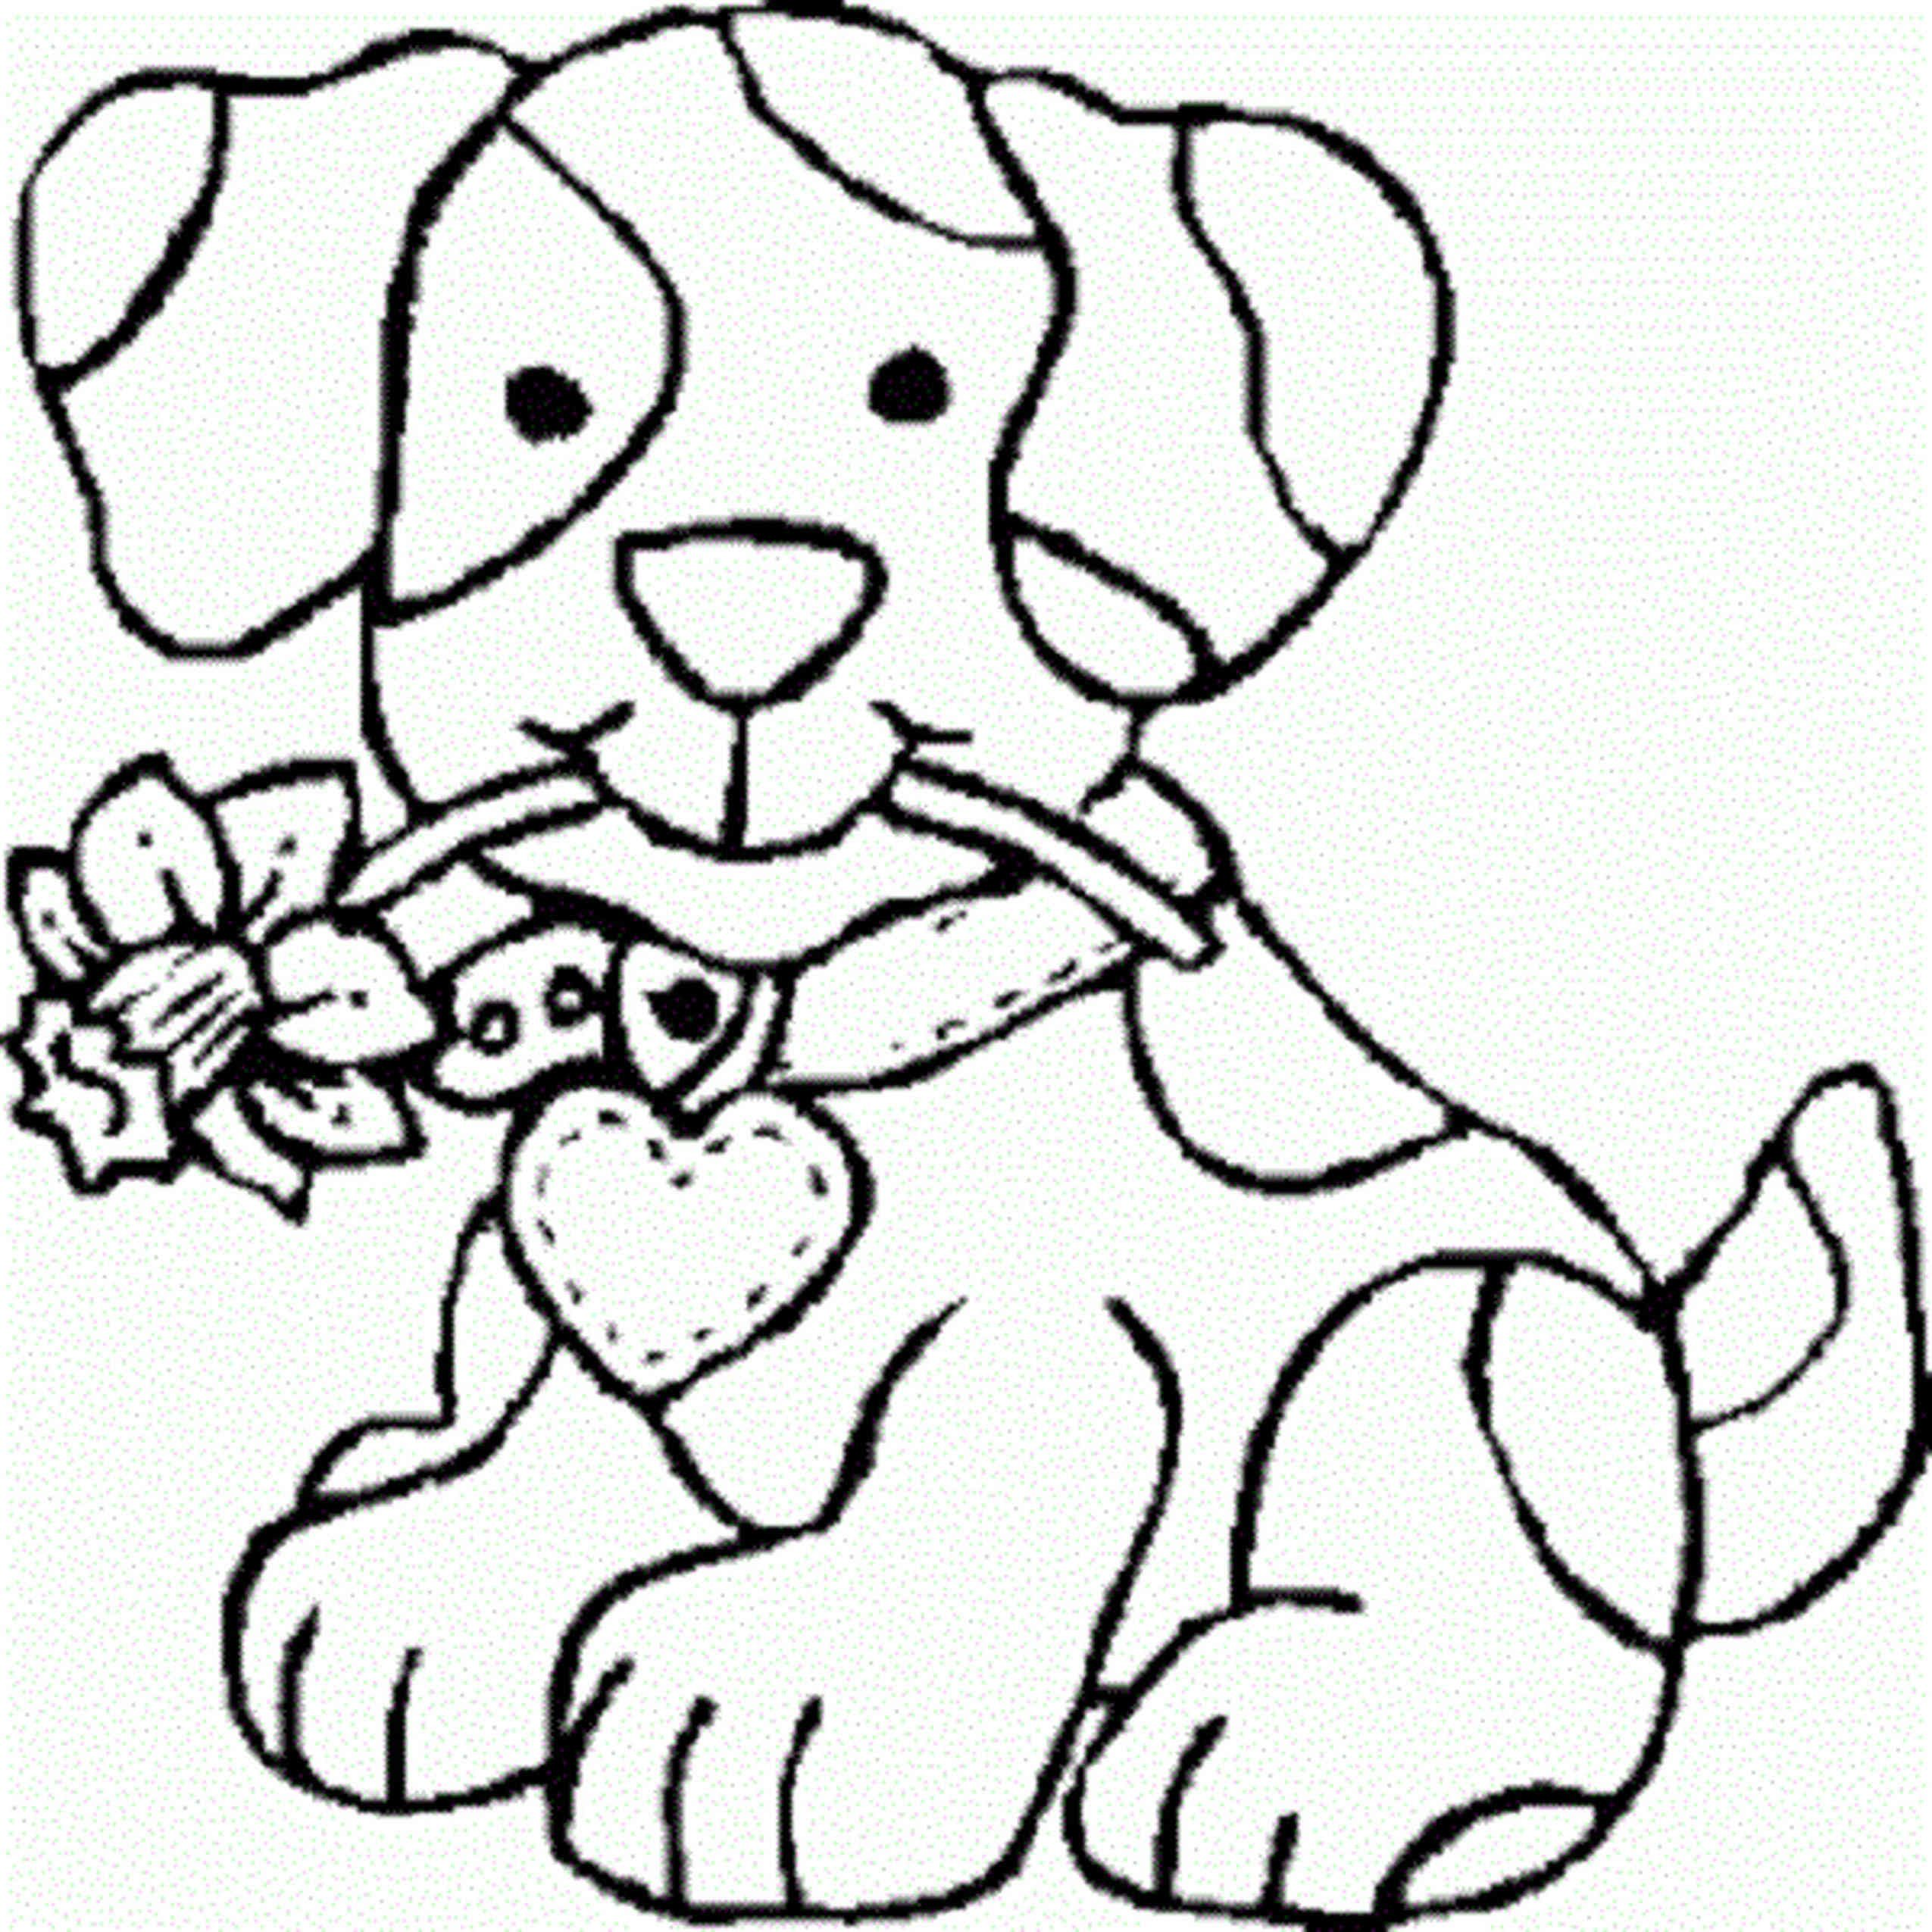 2550x2550 Free Coloring Pages For Girls Colorings Craft